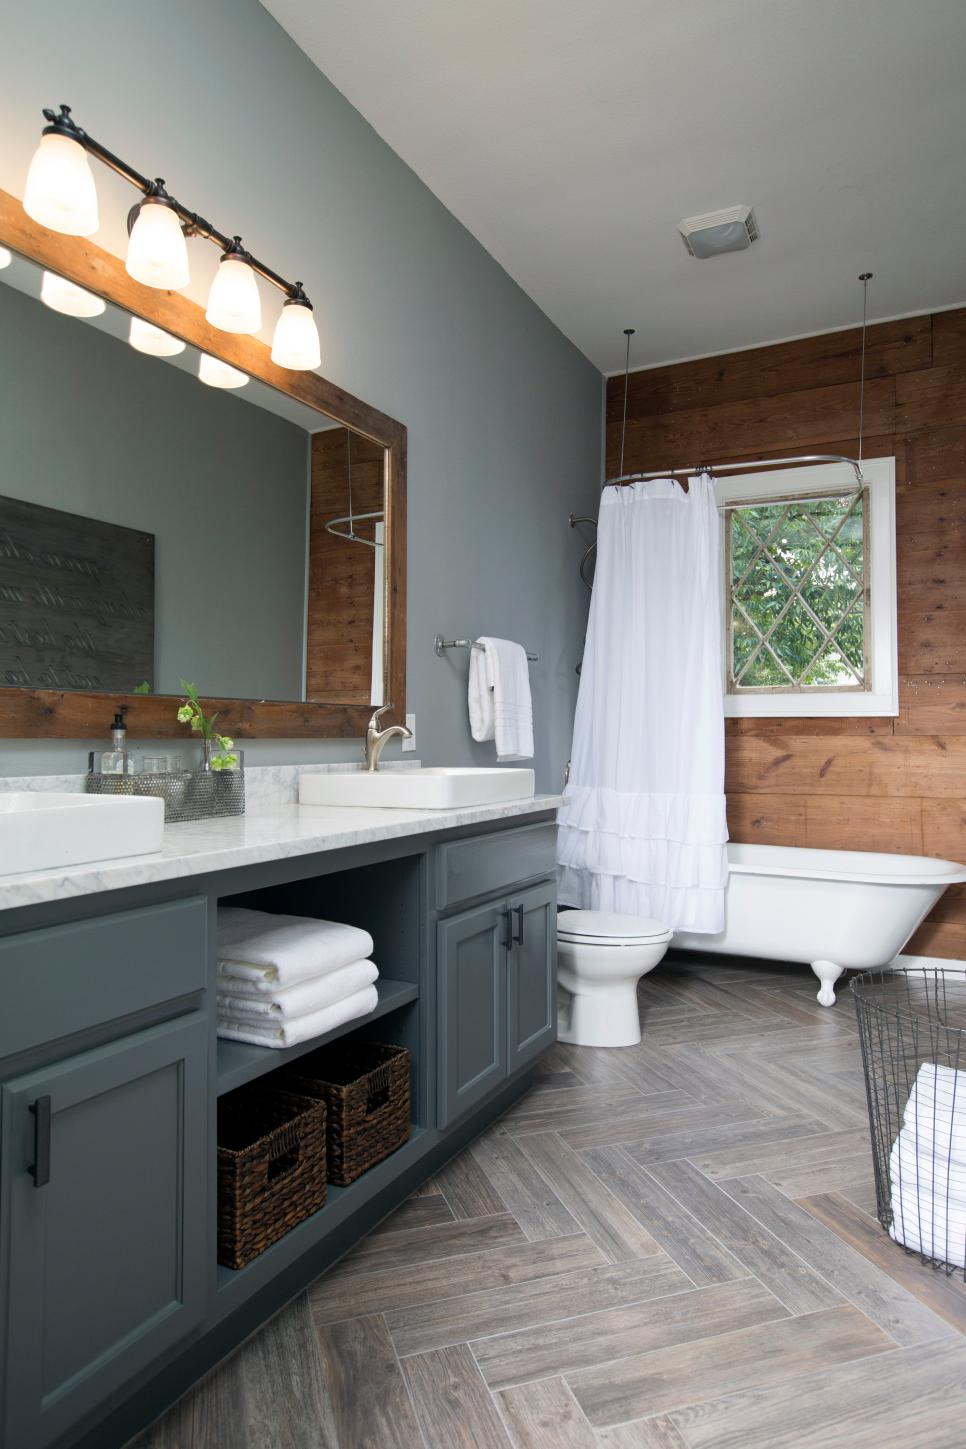 Top 10 fixer upper bathrooms daily dose of style - Bathroom paint colors with gray tile ...